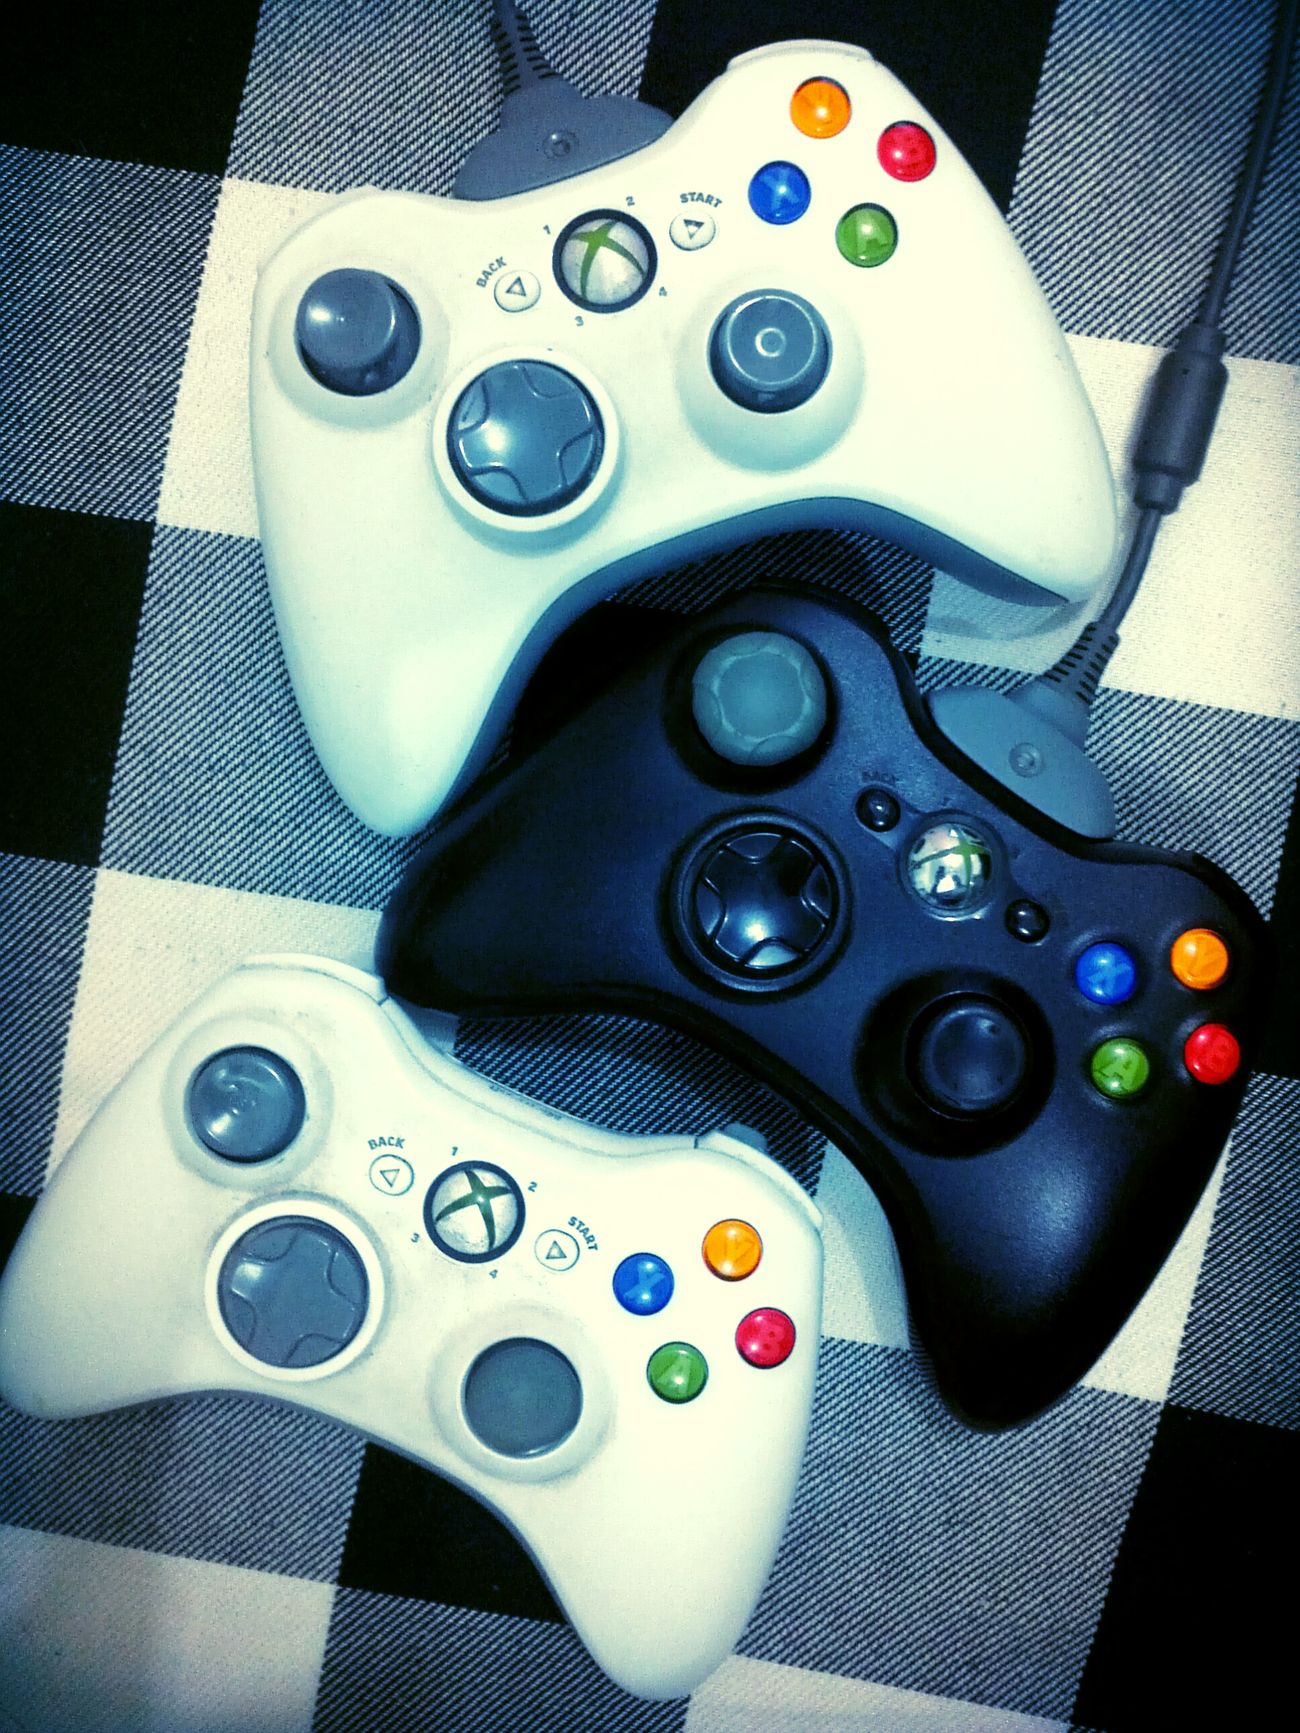 Let's play a little Halo 4 Xbox 360 Wargame Chilling